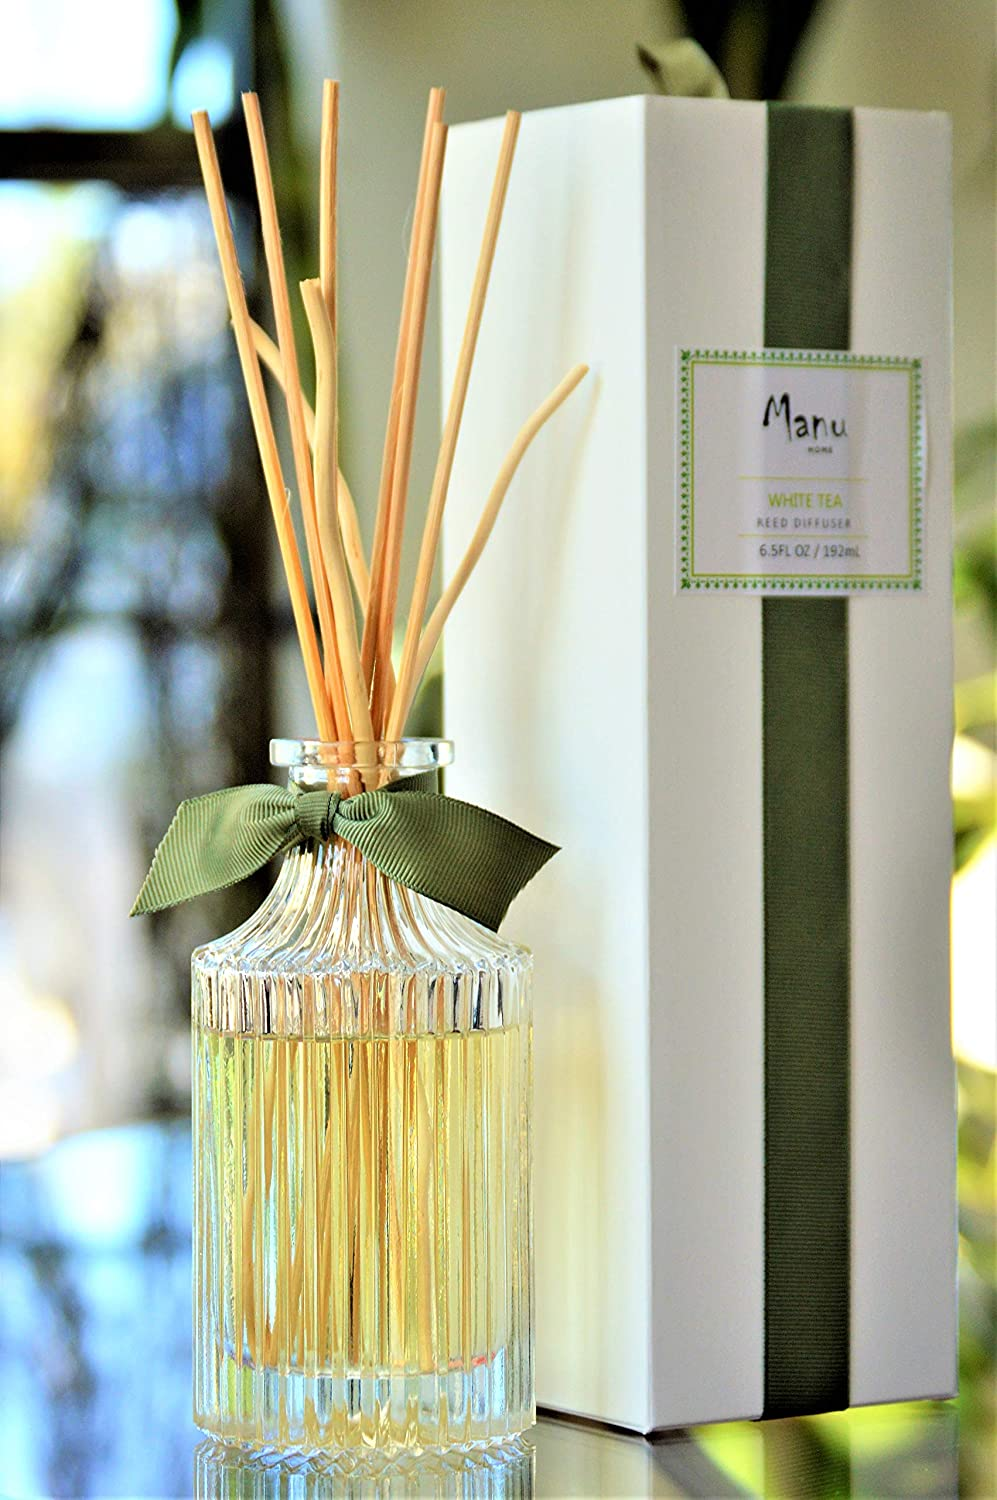 Manu Home White Tea Reed Diffuser Set - 6.5 oz Natural Reed Diffuser Sticks | Aromatherapy Oils | Subtle Notes of Woody Cedar and Vanilla | Made in USA